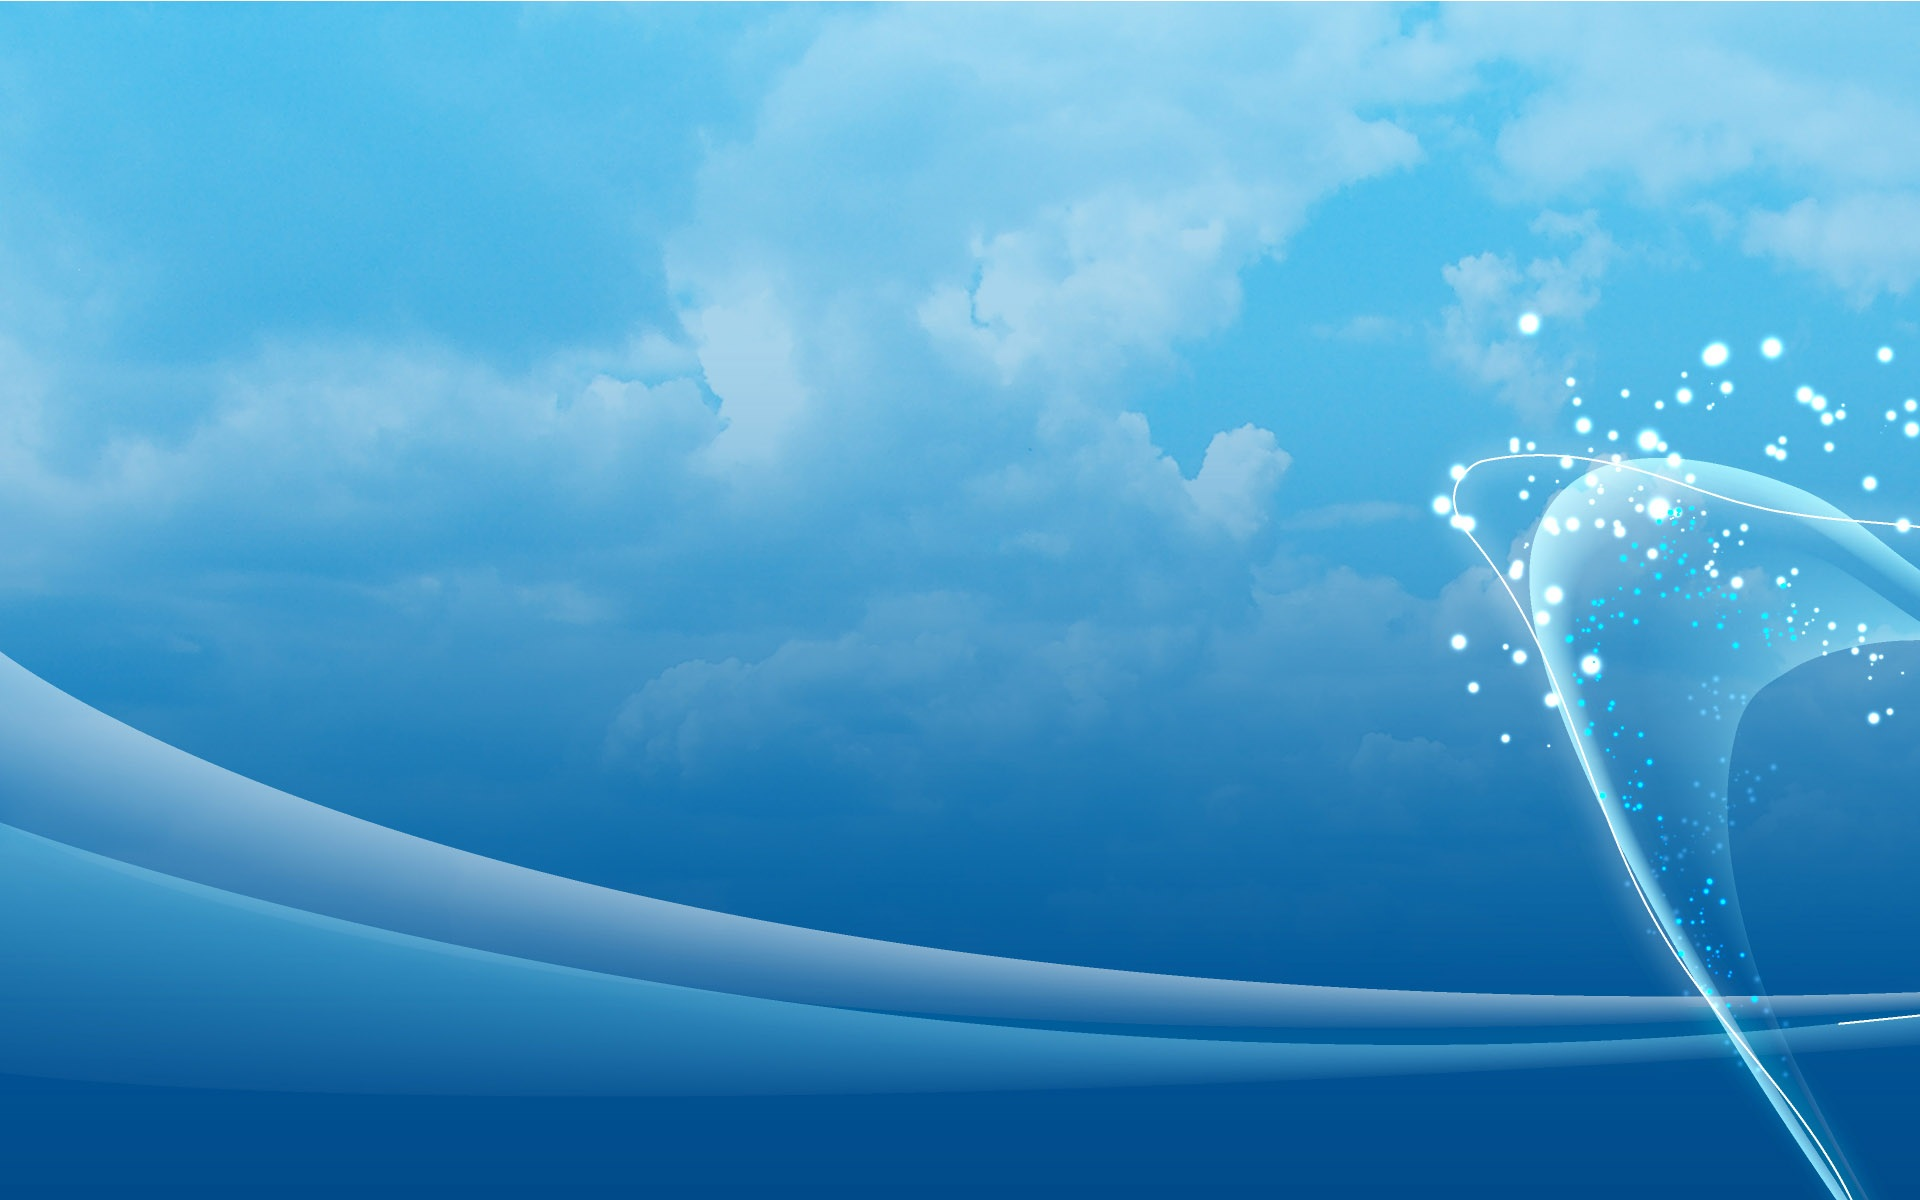 Sky Abstract Wallpapers HD Wallpapers 1920x1200